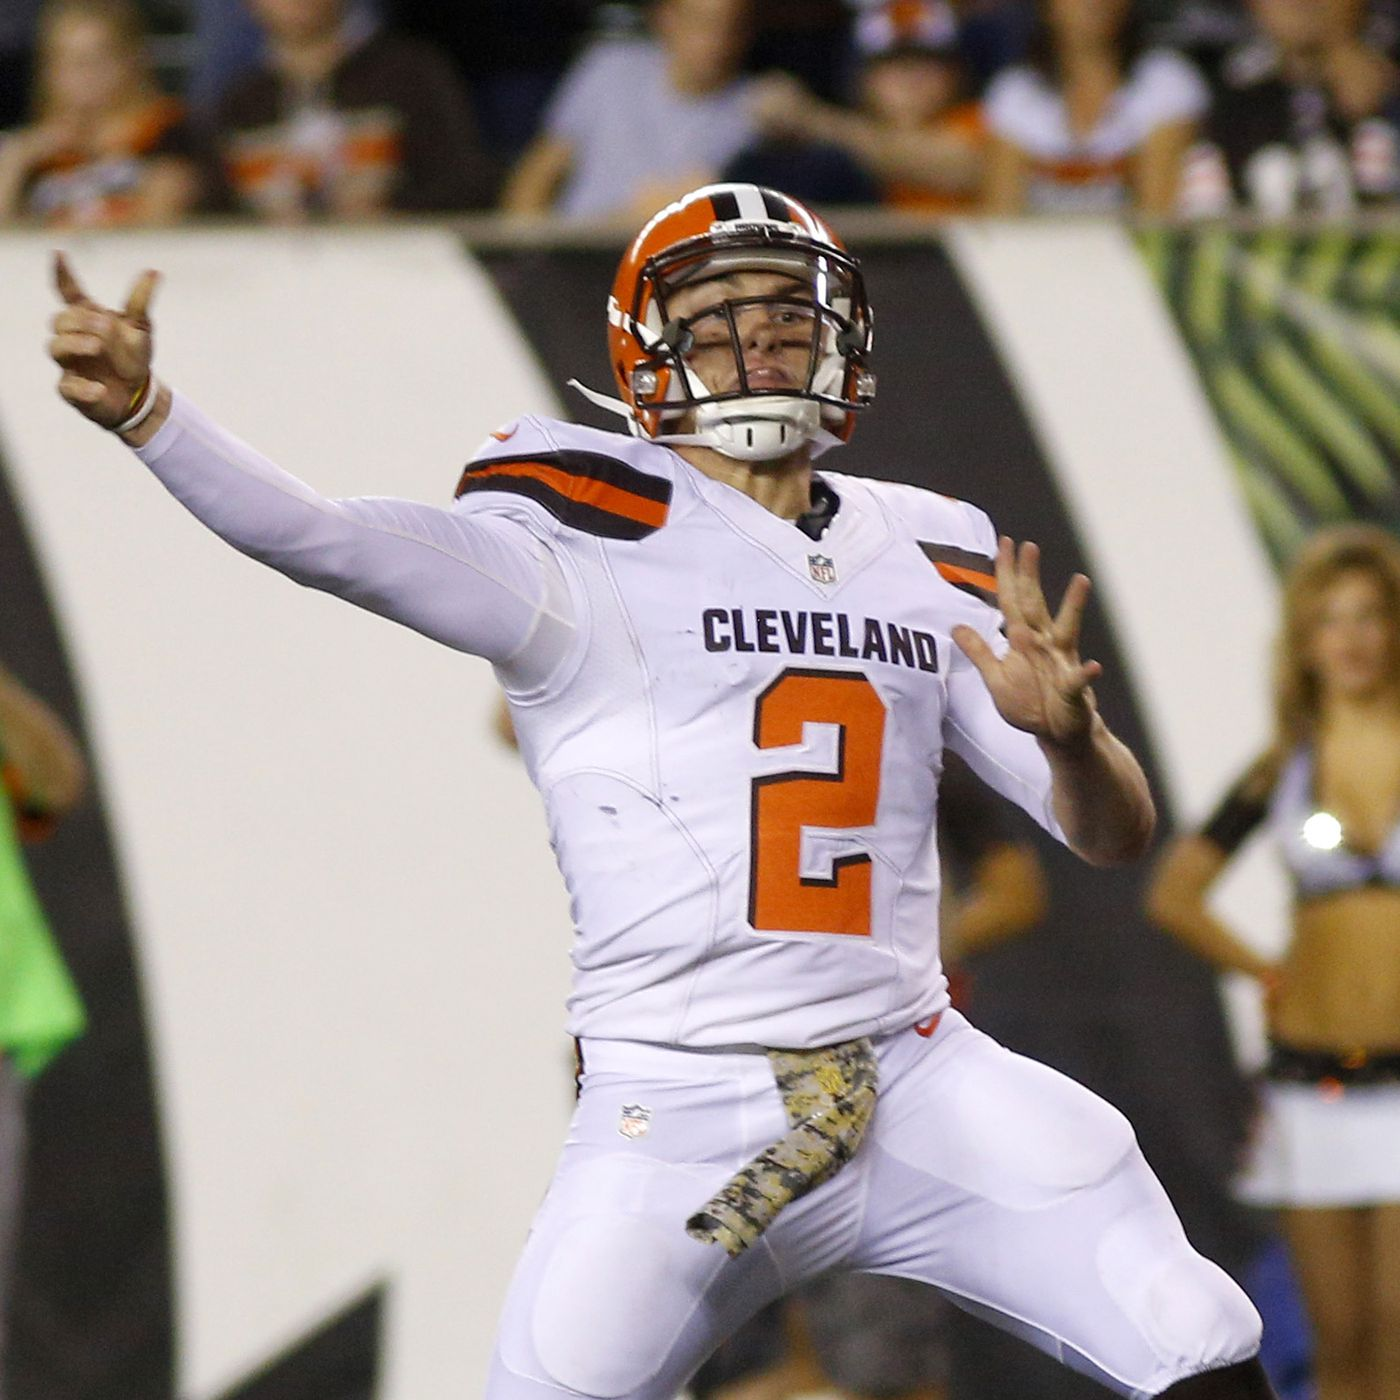 597038a43 Browns expected to start Johnny Manziel against Steelers - SBNation.com